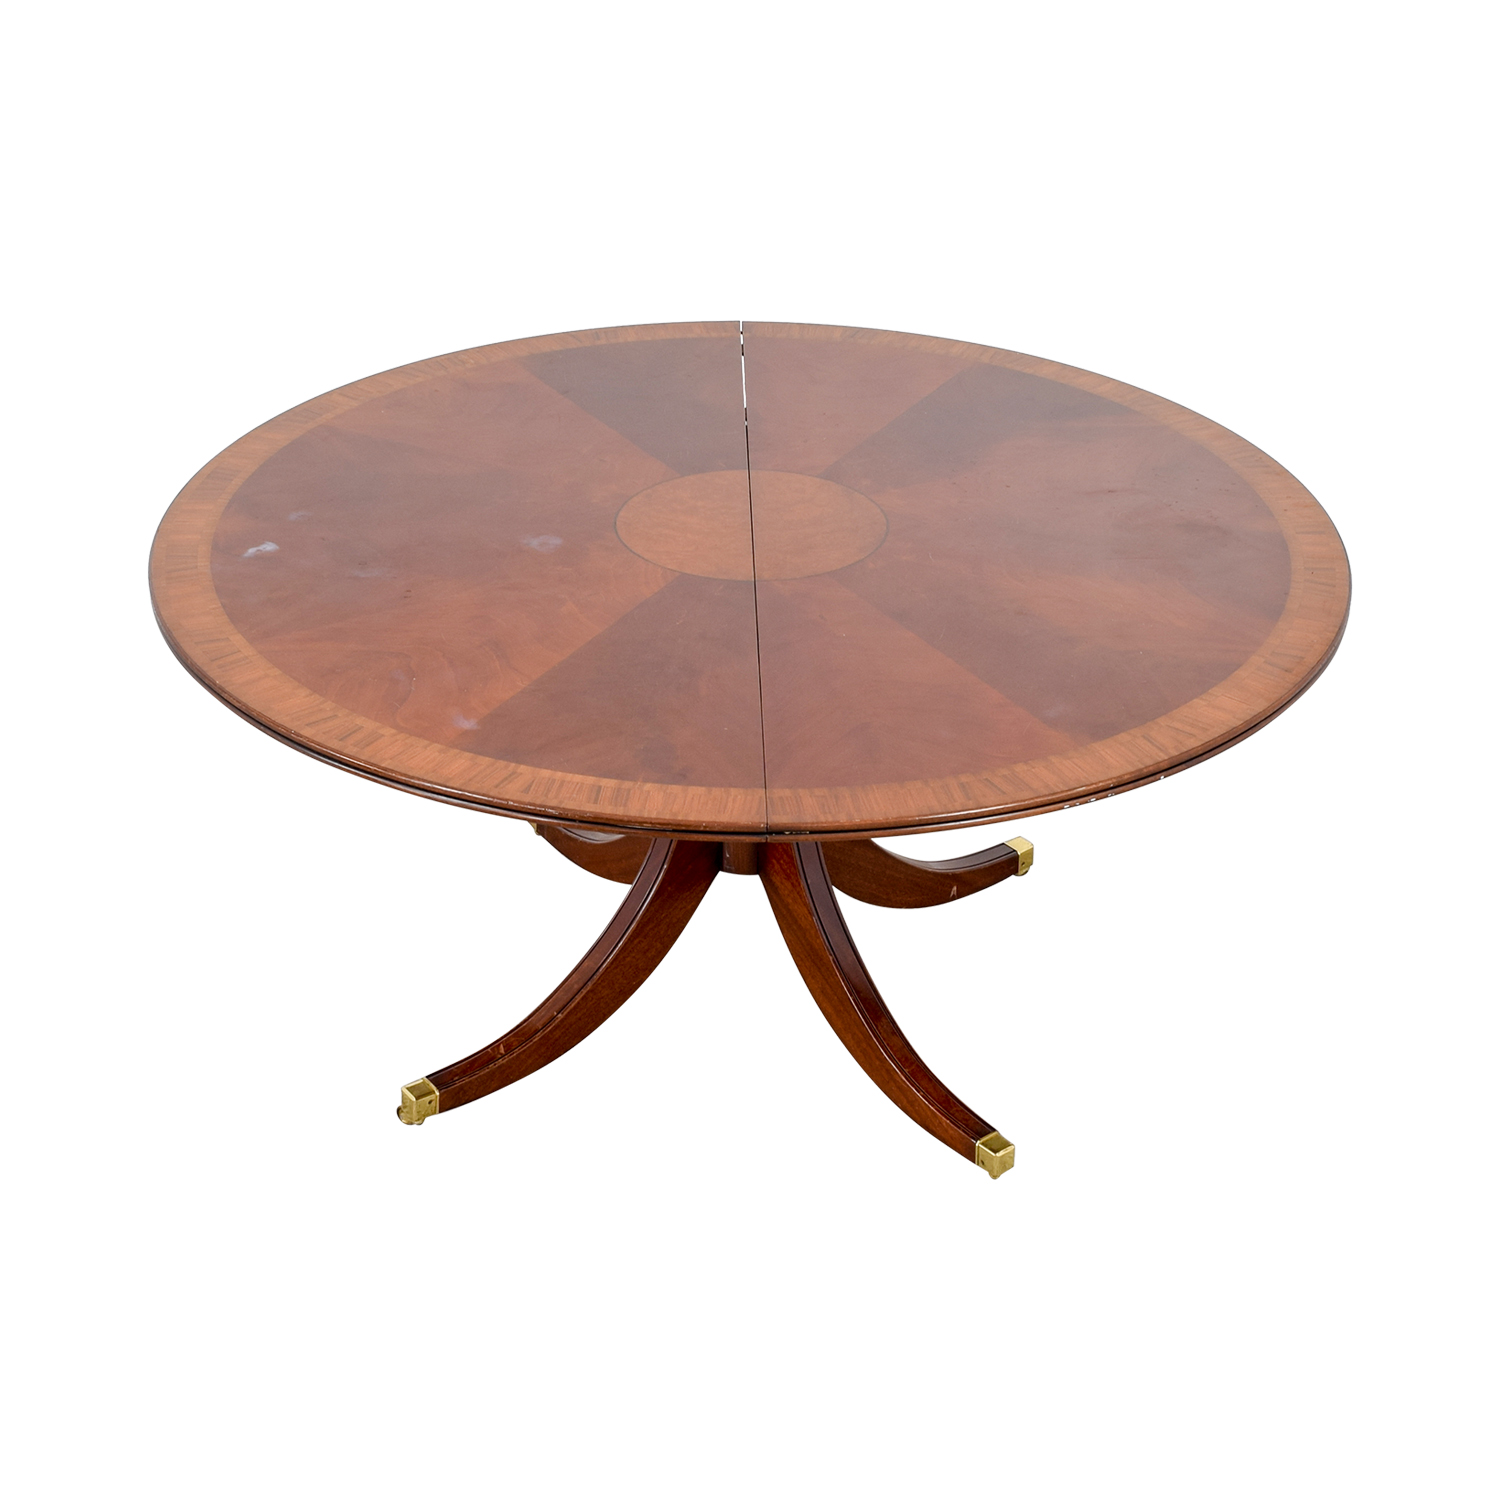 Scully & Scully Scully & Scully Mahogany Round Dining Table with Extension nyc